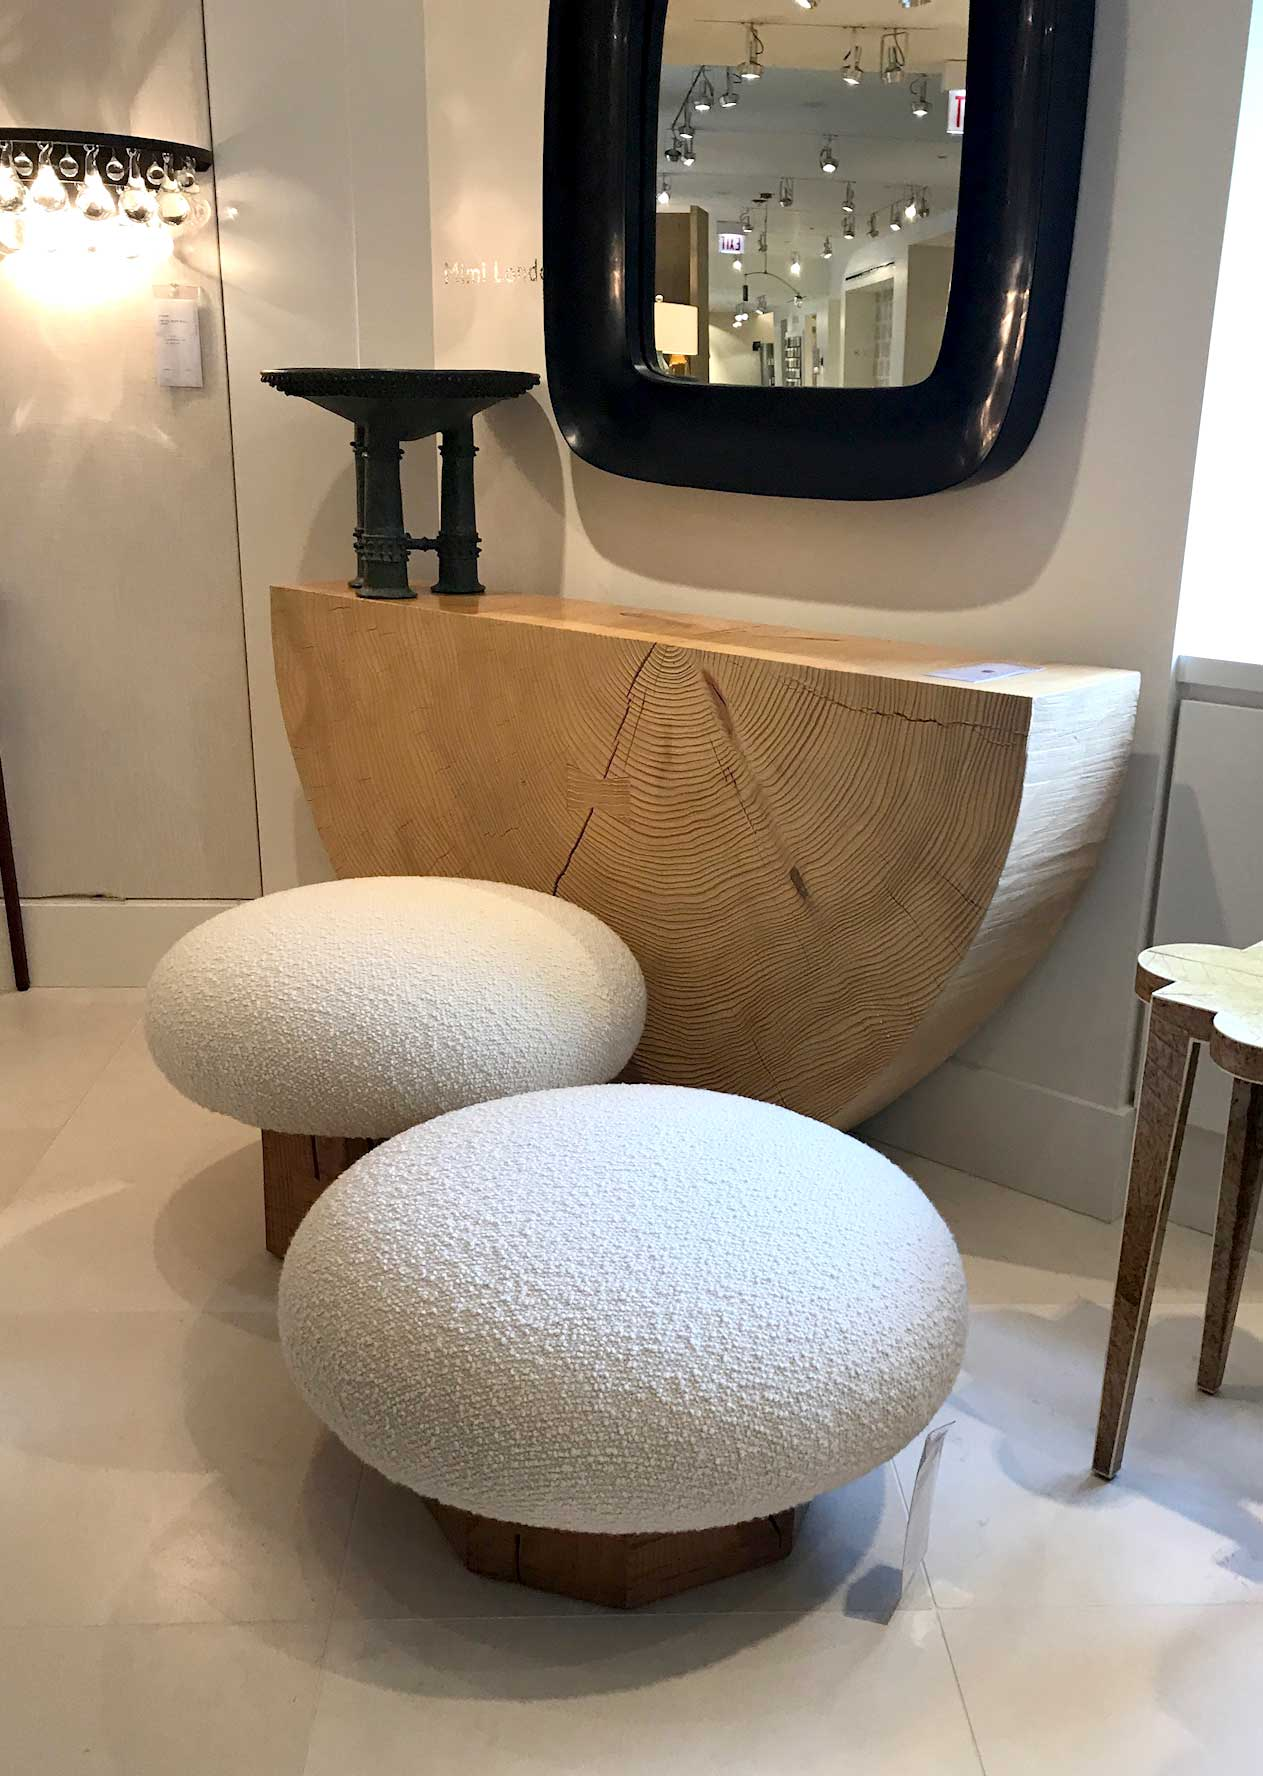 5 Trends We Saw at NeoCon 2018 from Unisource Solutions - 1 Organic